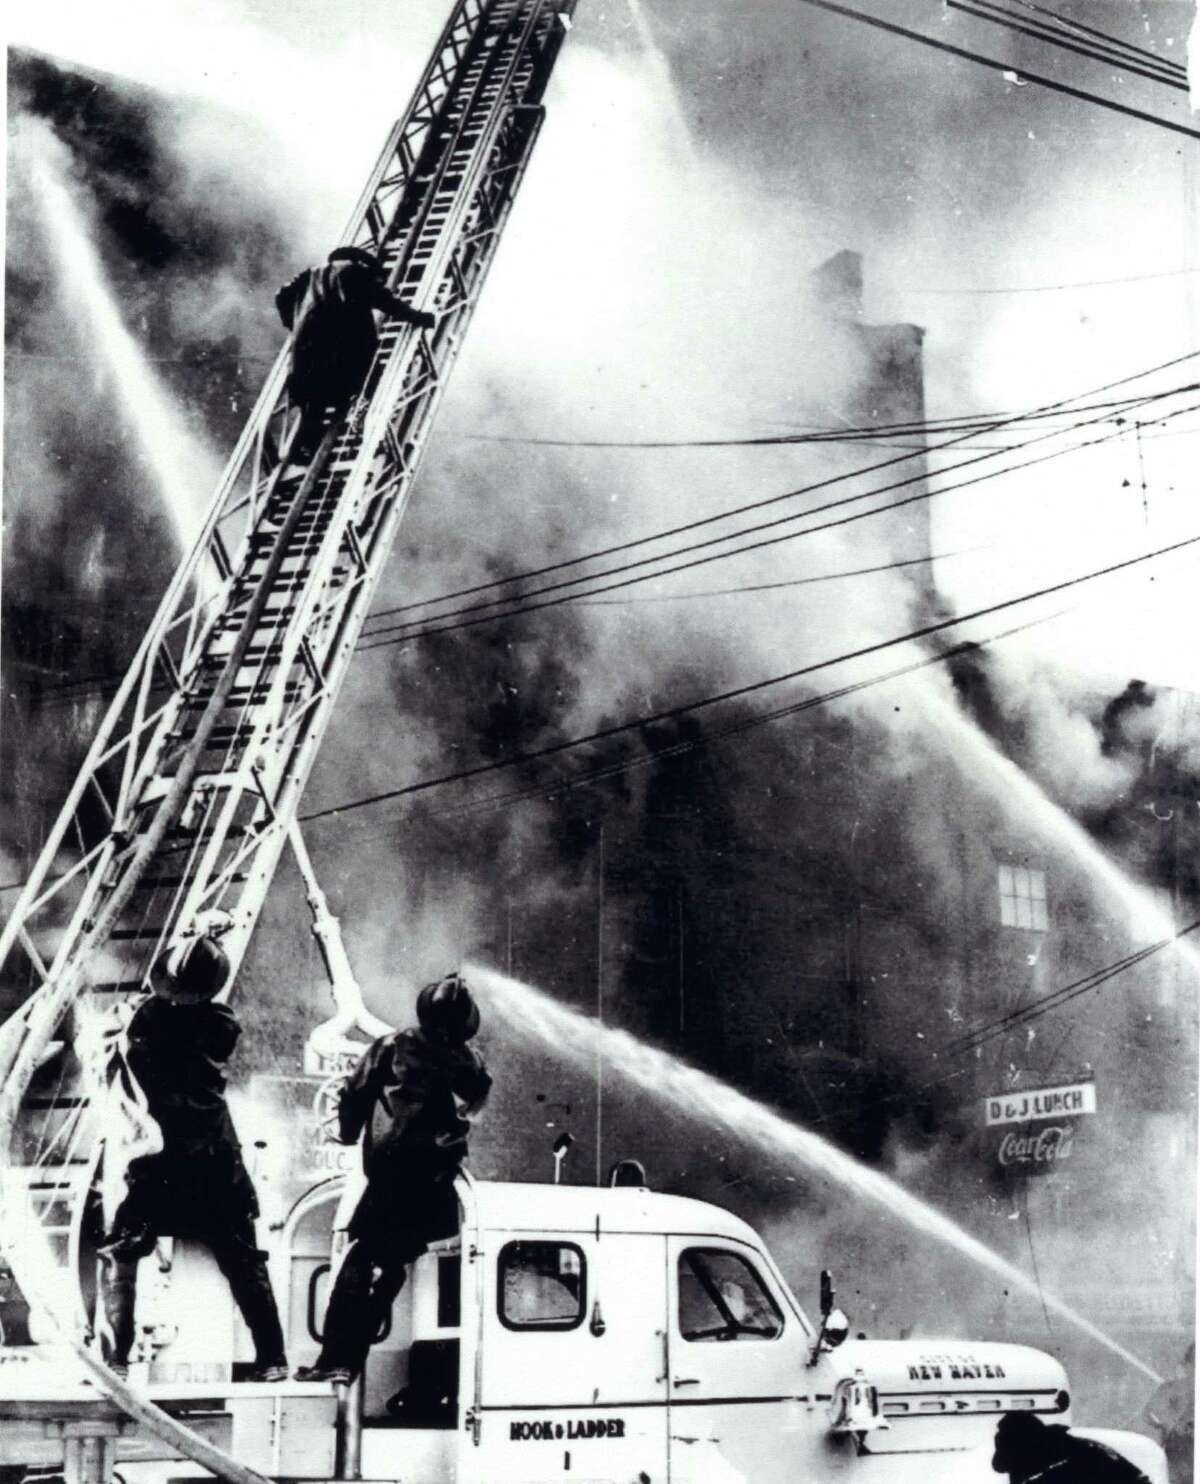 Scenes from the deadly 1957 Franklin Street fire and its aftermath in New Haven.